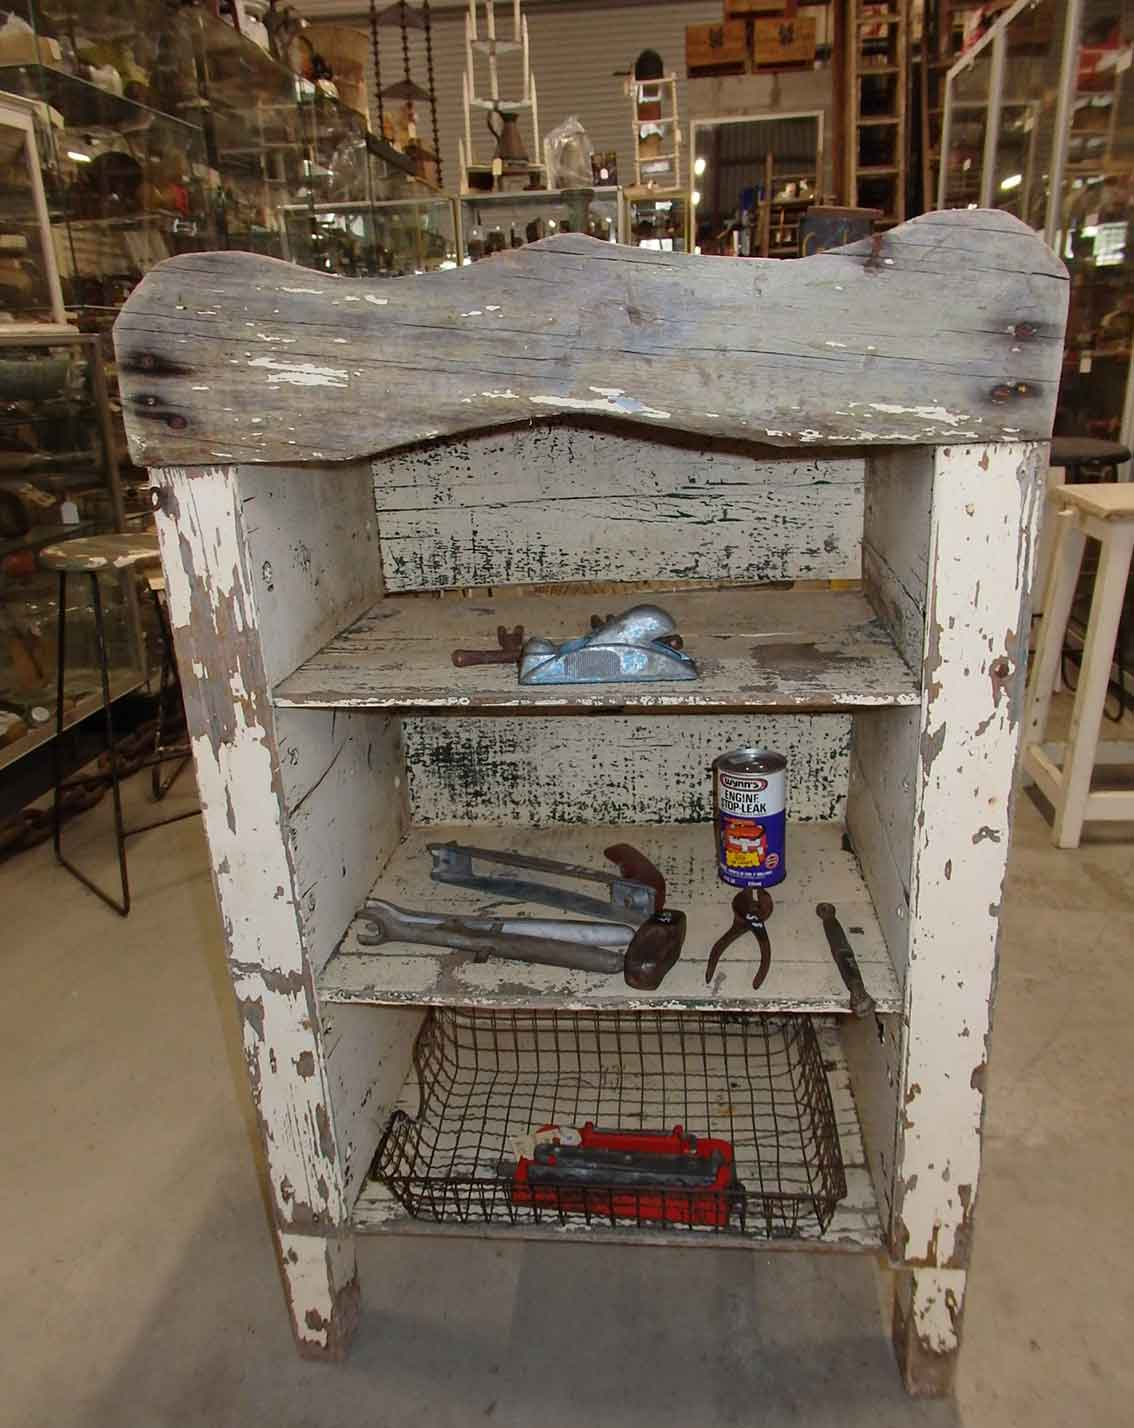 Antique depression kero box cupboard for sale at Heaths Old Wares, Collectables & Industrial Antiques, 19-21 Broadway, Burringbar NSW 2483 Ph 0266771181